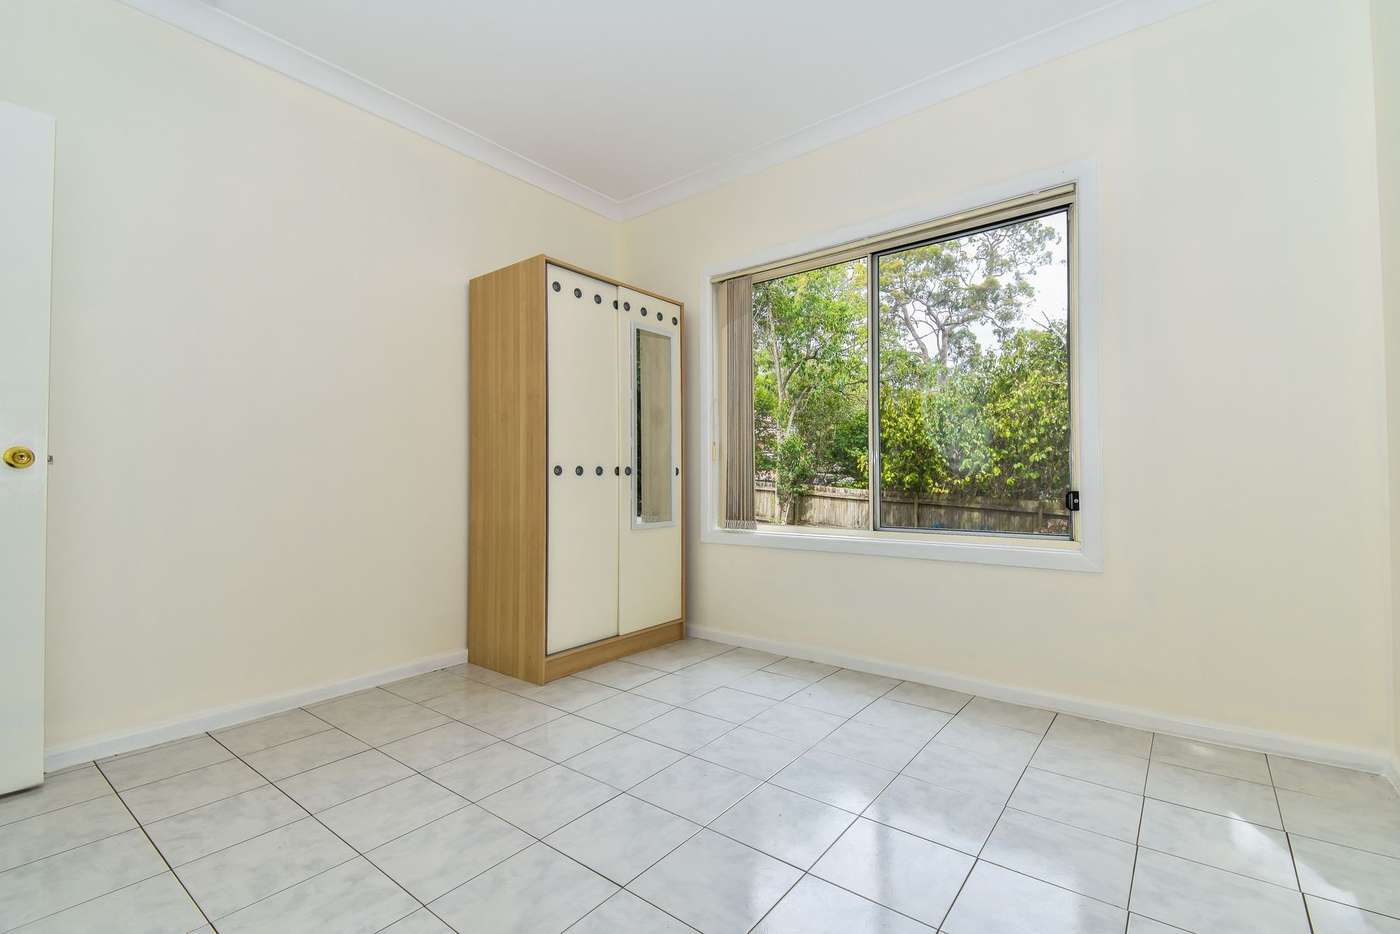 Sixth view of Homely house listing, 424A Pennant Hills Road, Pennant Hills NSW 2120